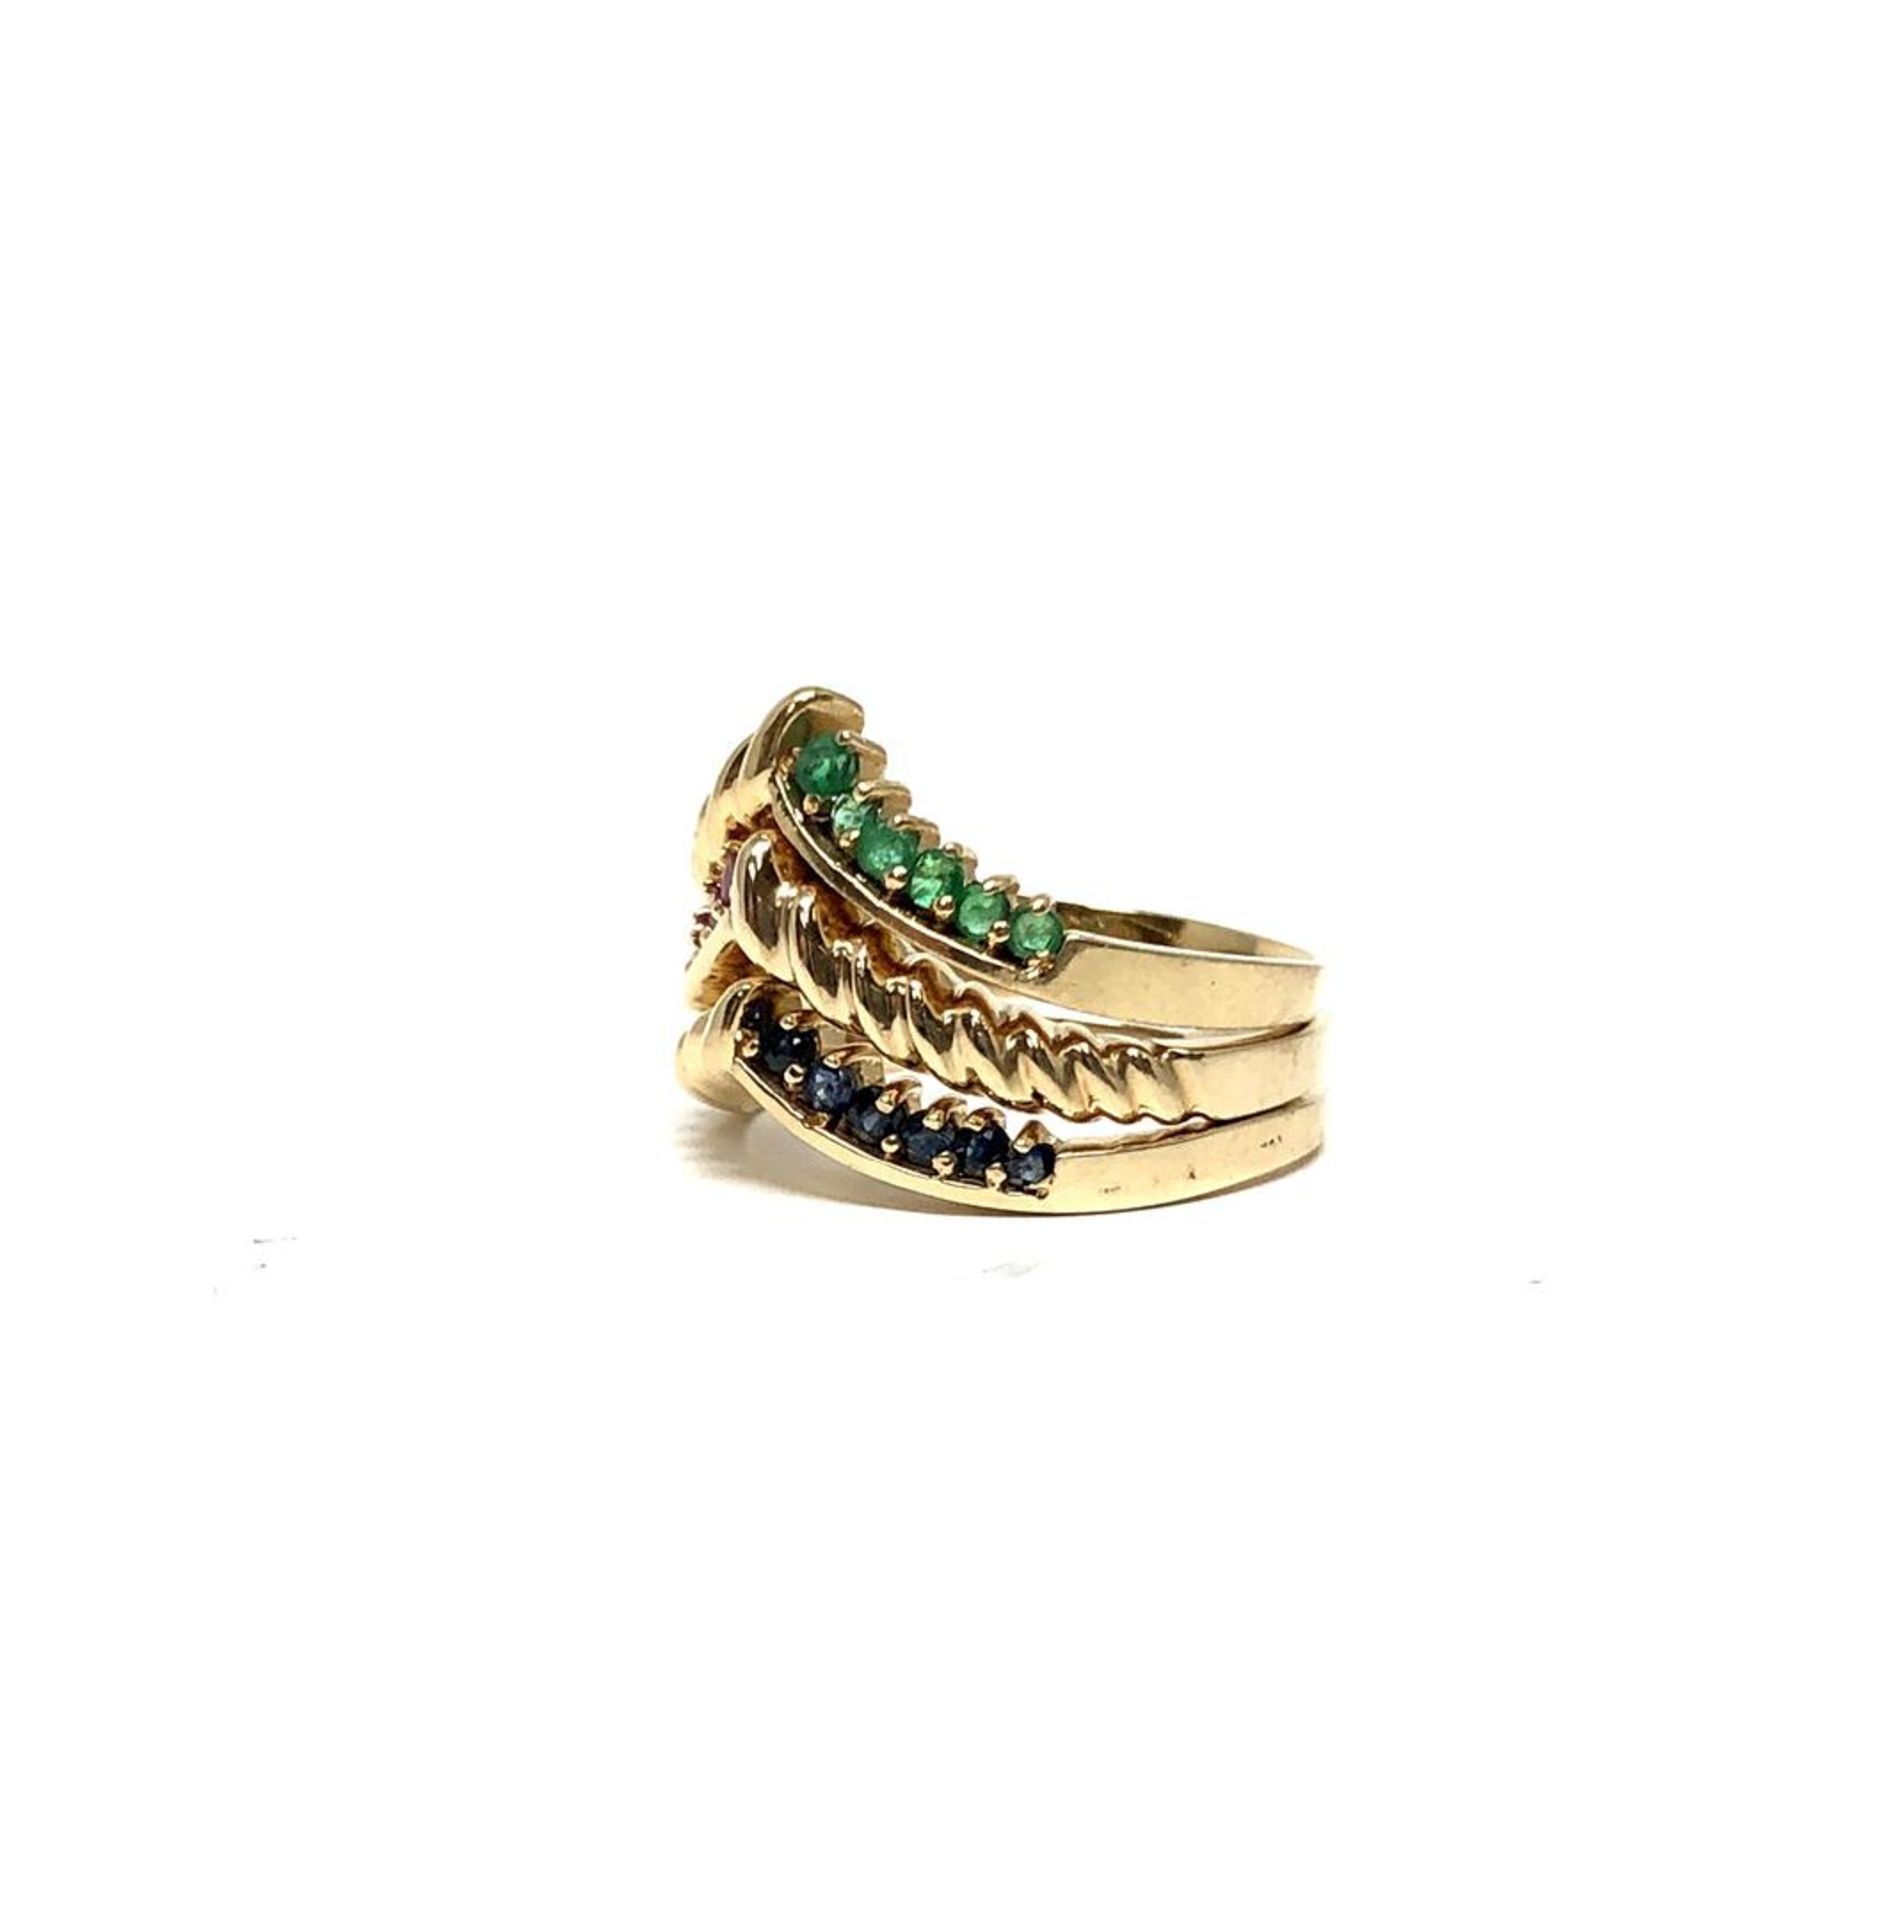 0.69 ctw Round Brilliant Emerald Rings - 14KT Yellow Gold - Image 2 of 4